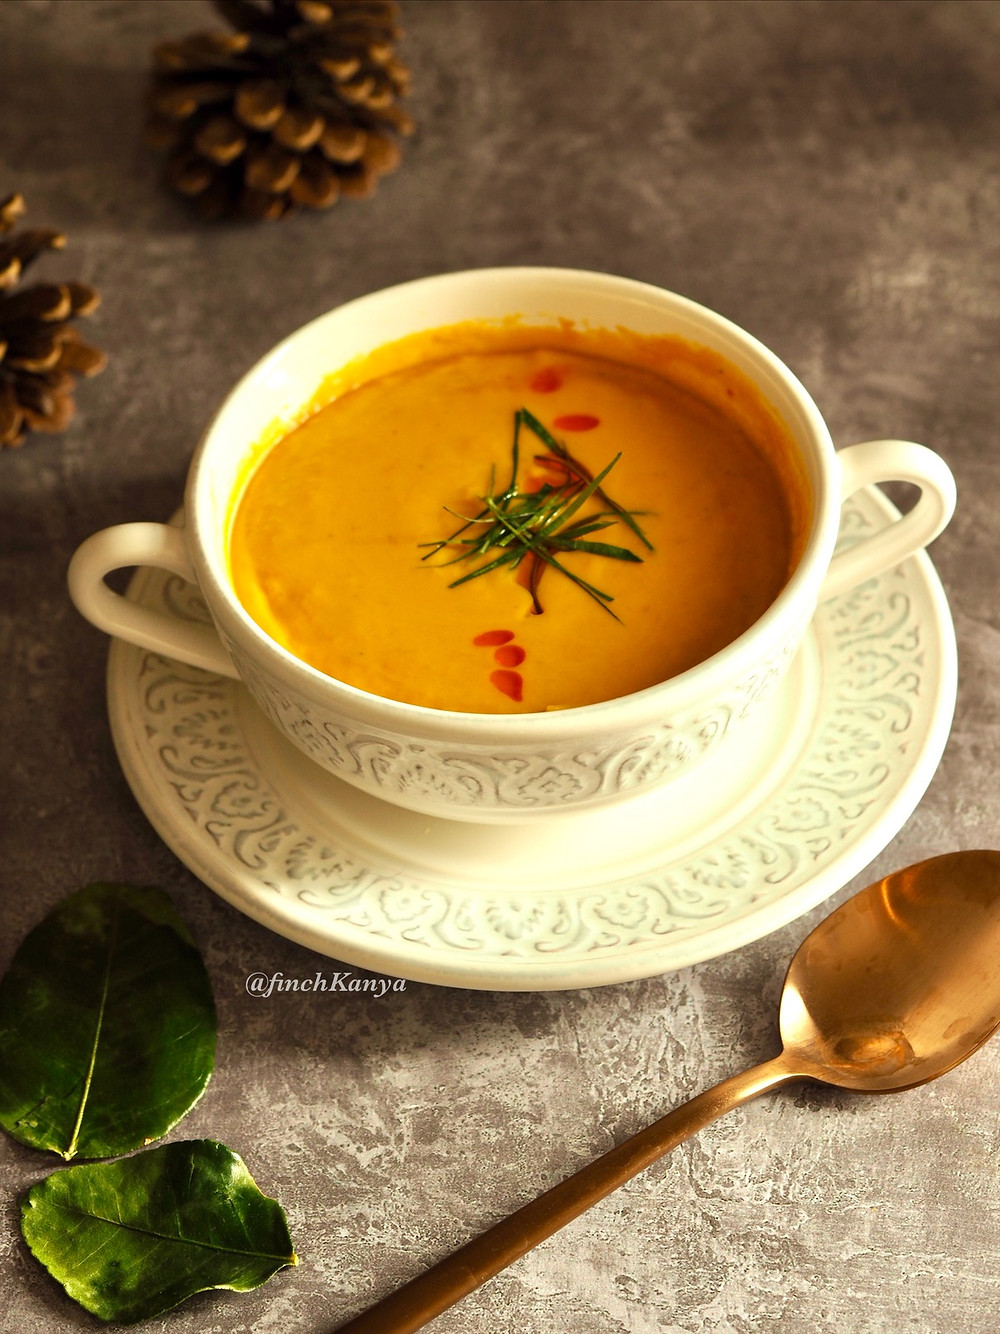 Butternut squash soup with Thai herbs and spice.